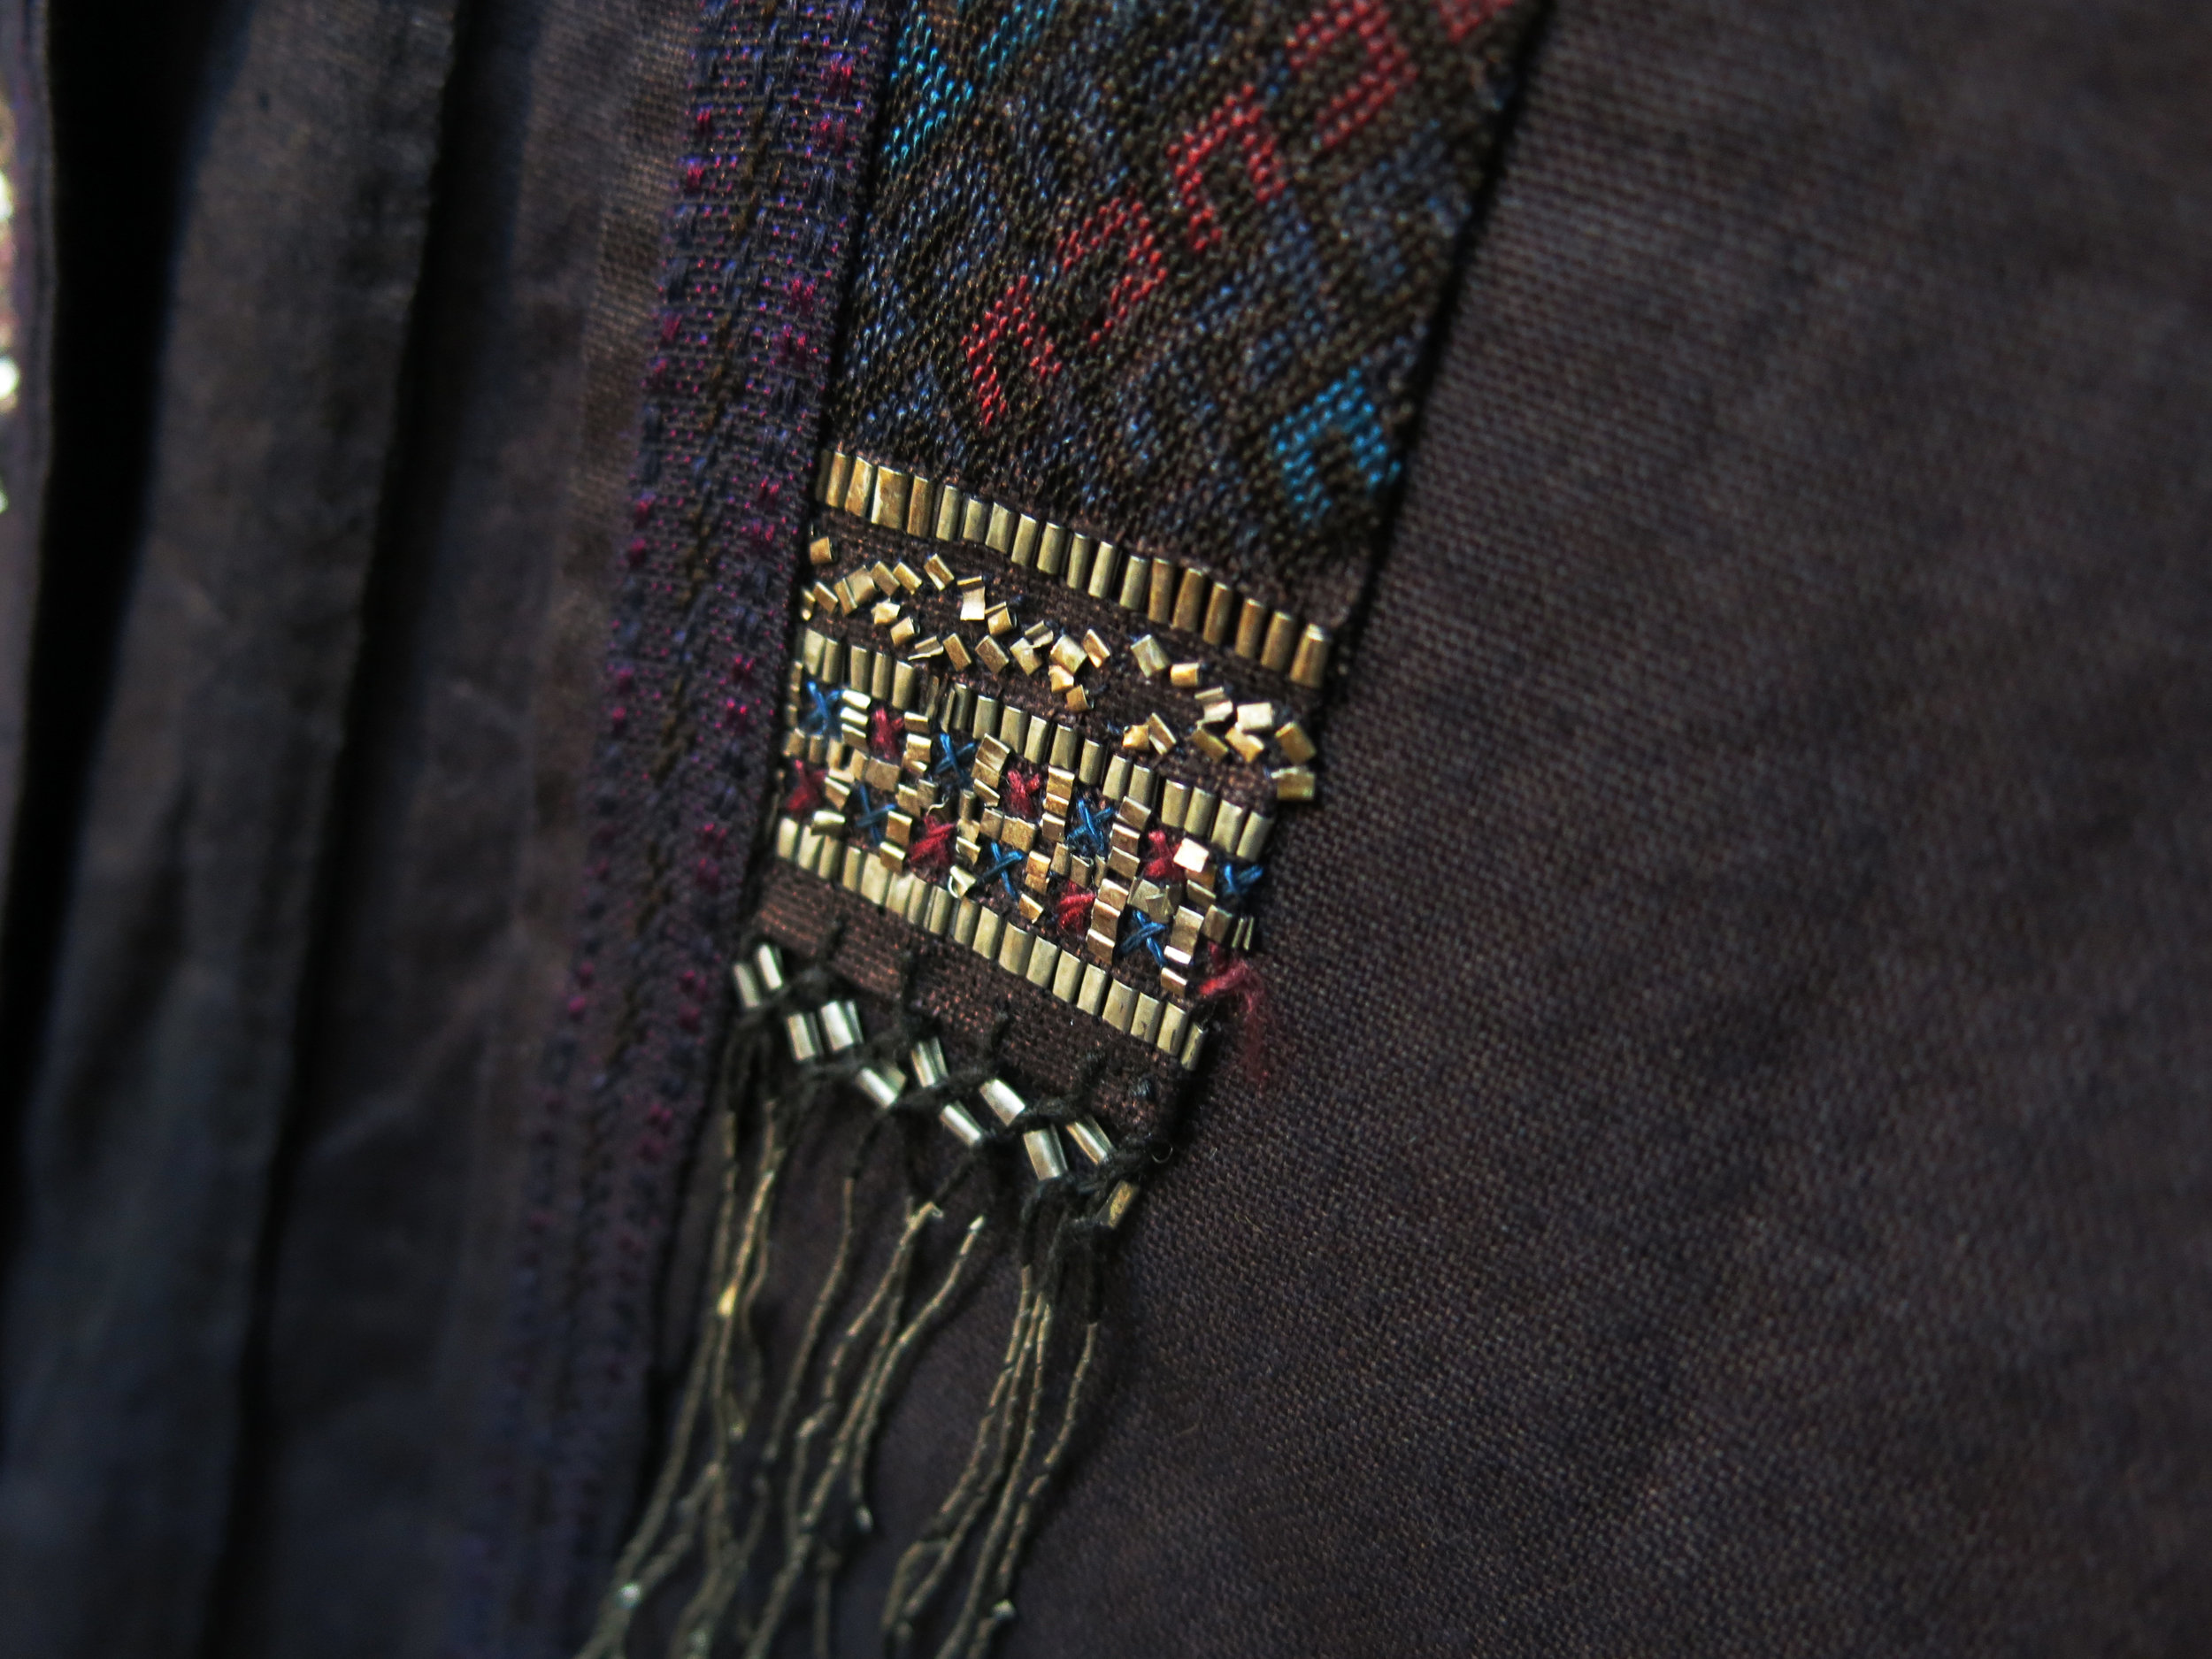 Edge of front collar with gimp tin embroidery